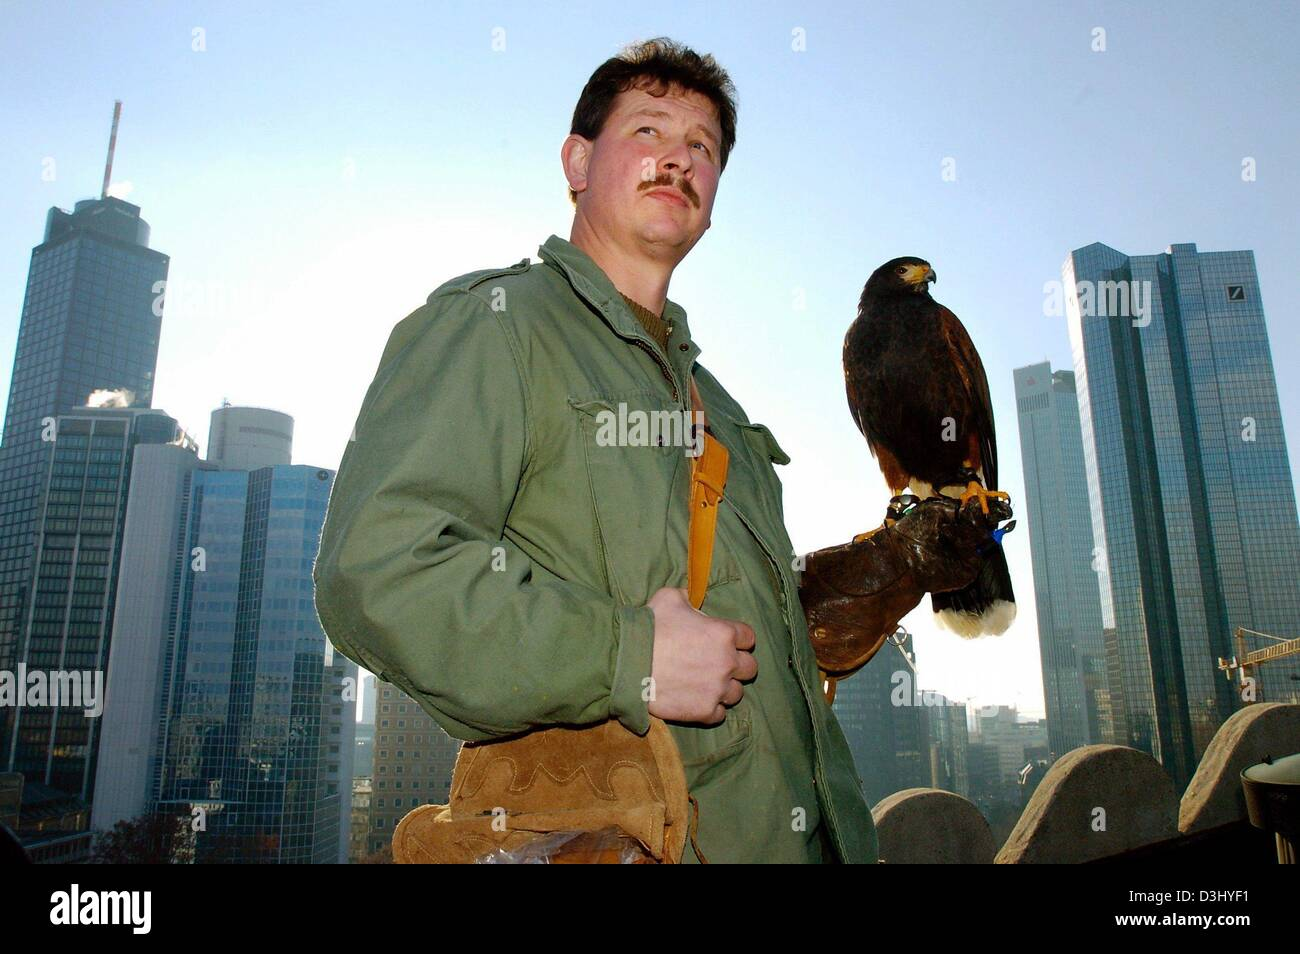 (dpa) - Falconer Frank Schaumann holds female buzzard Ronja on his arm as he stands on the rooftop of the opera - Stock Image